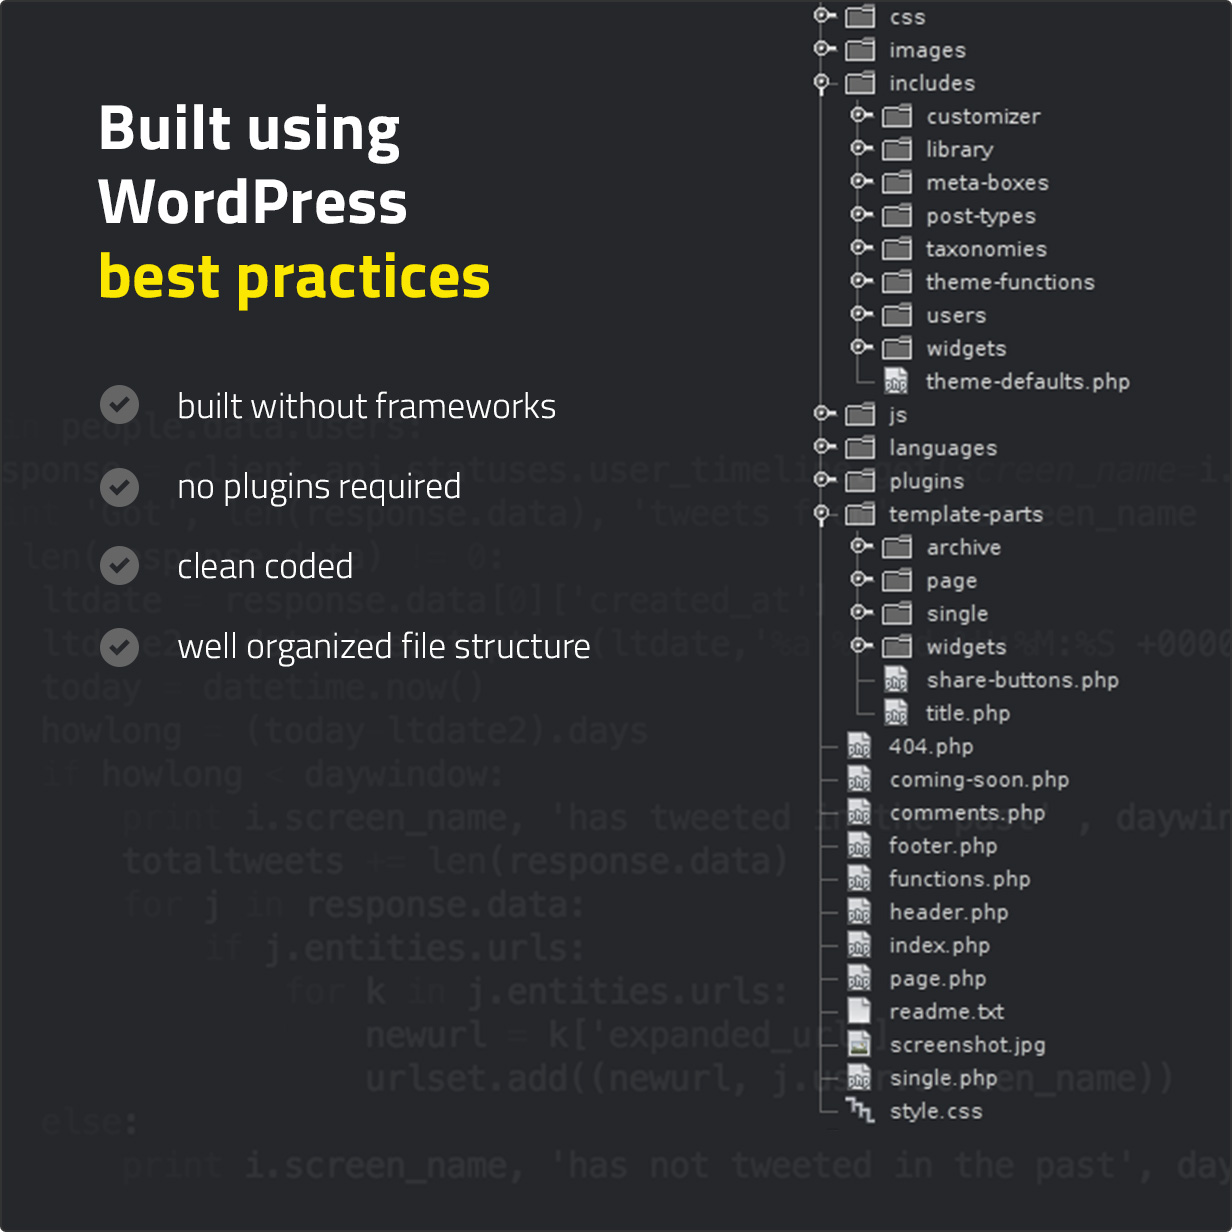 Built using WordPress best practices